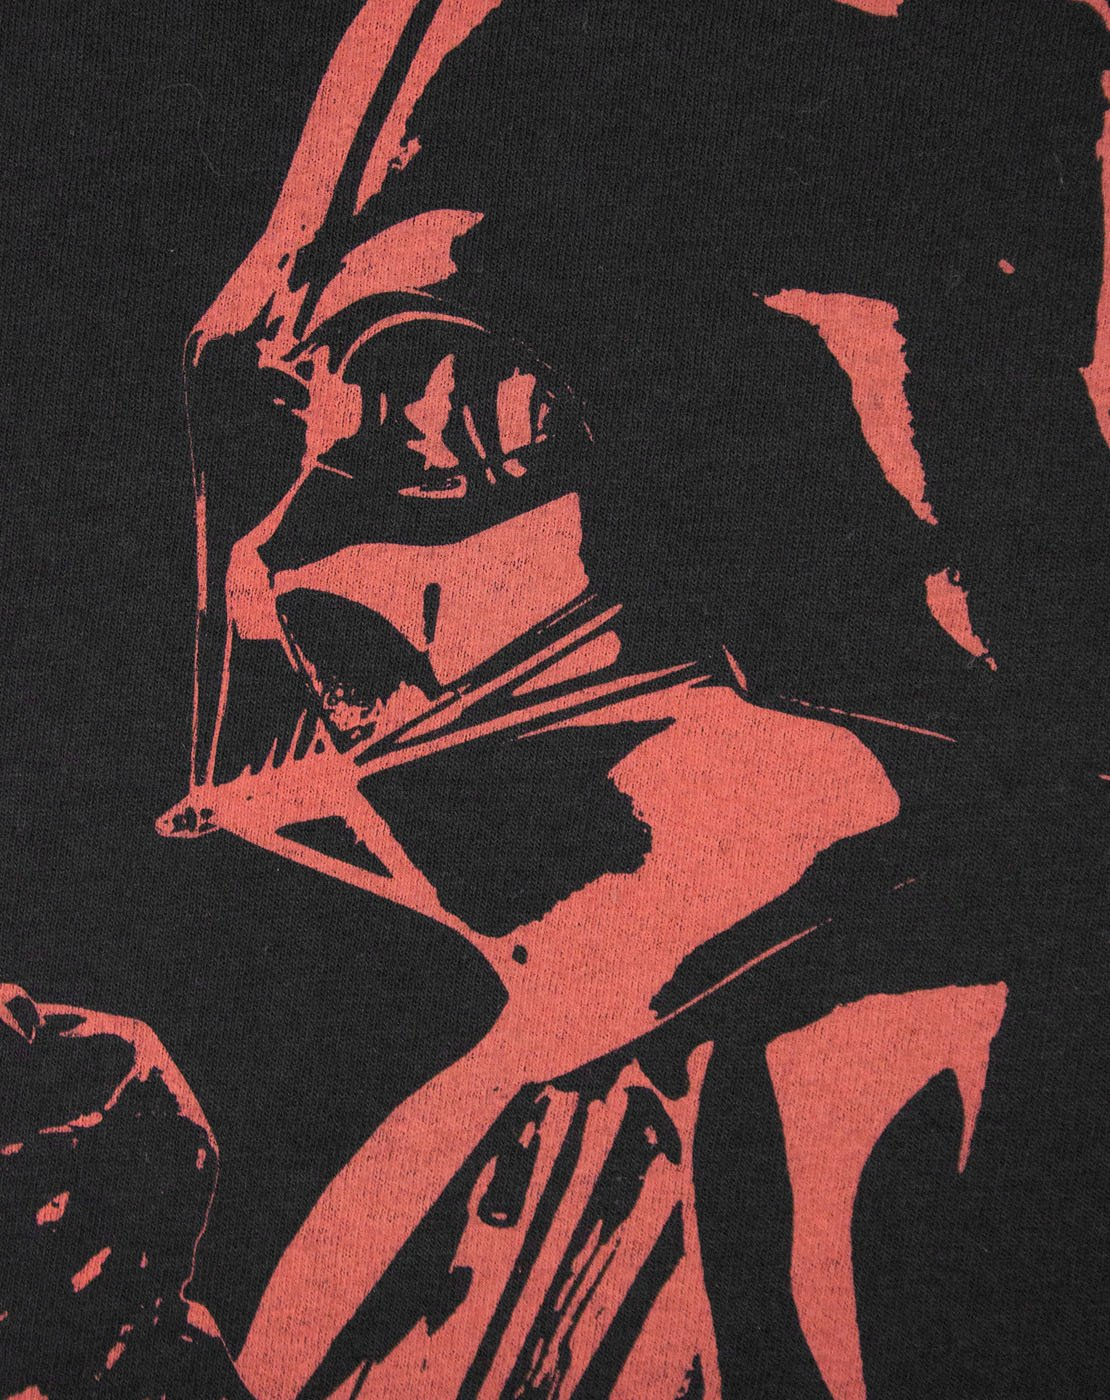 Star Wars Rogue One Darth Vader Boy's T-Shirt